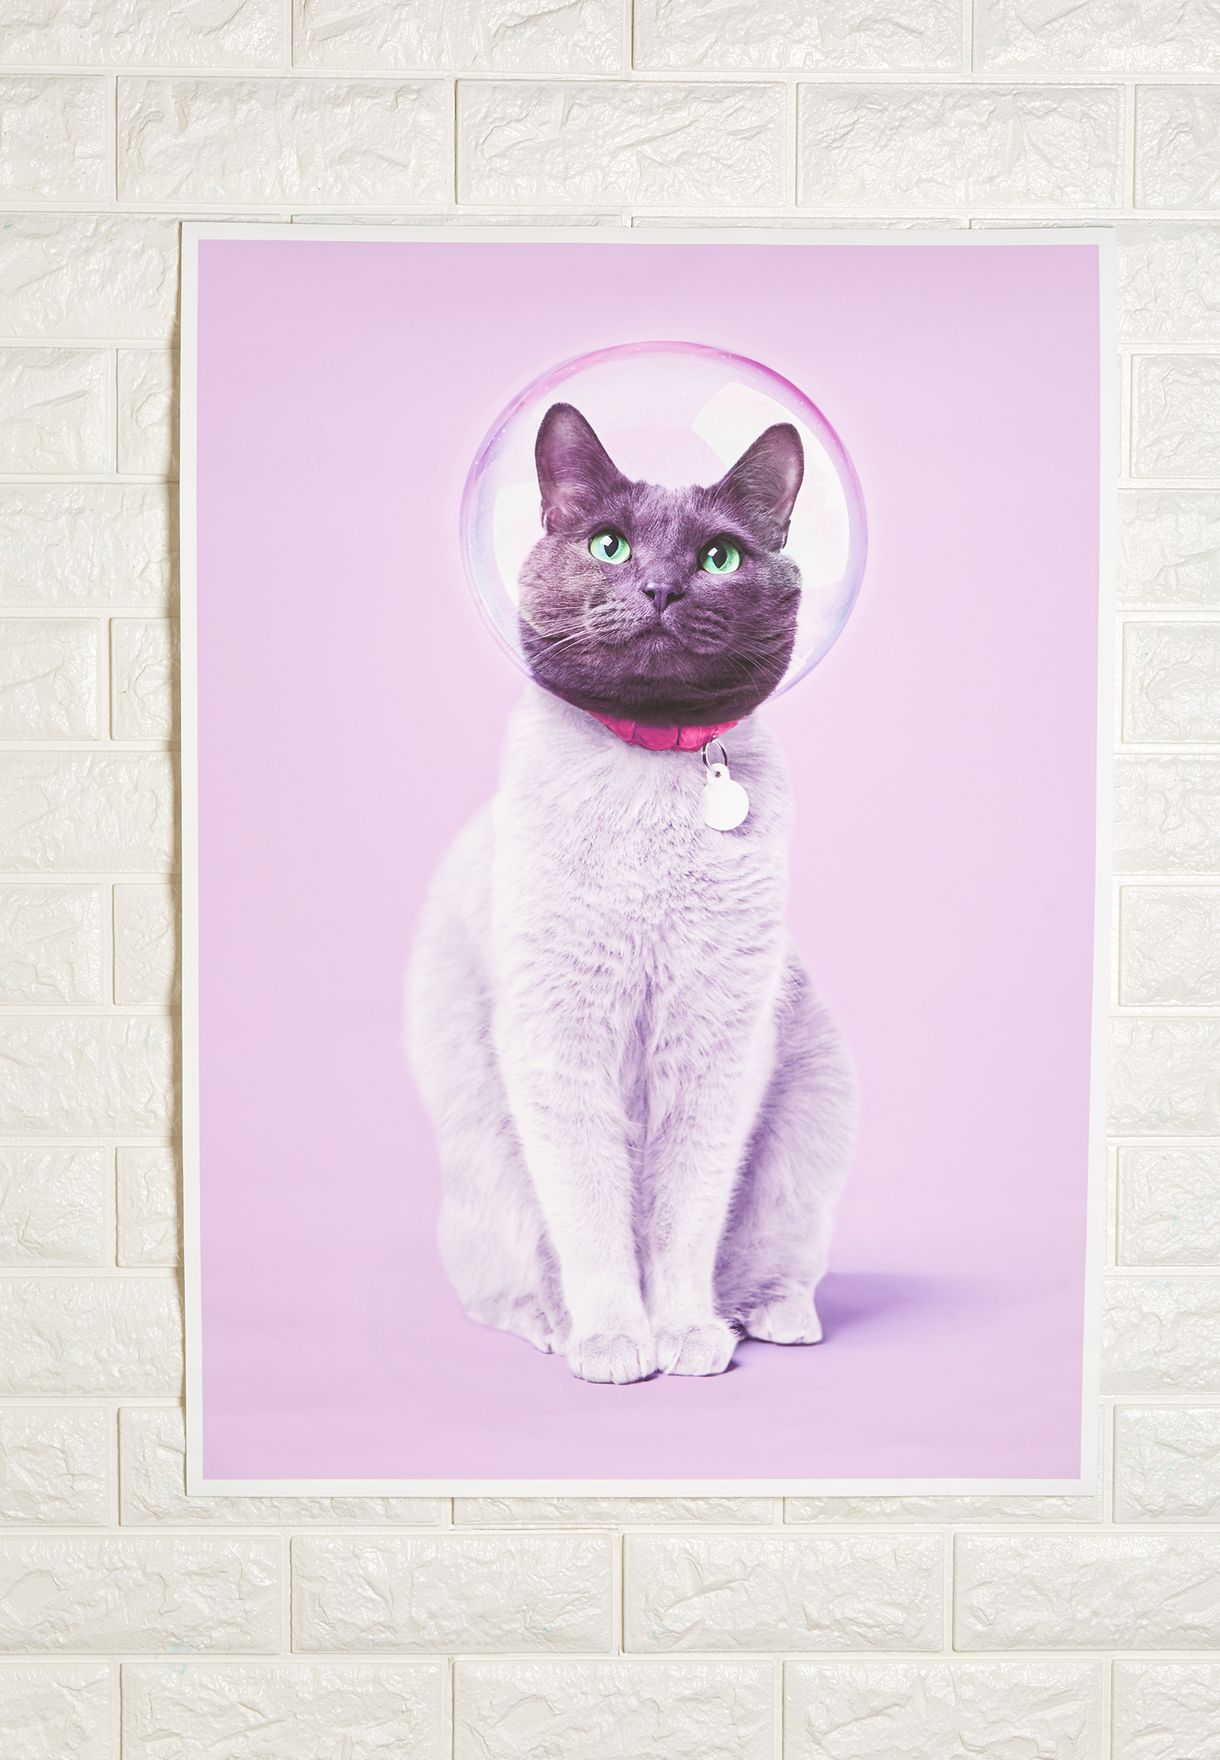 Cute Cat Artwork 50x70cm